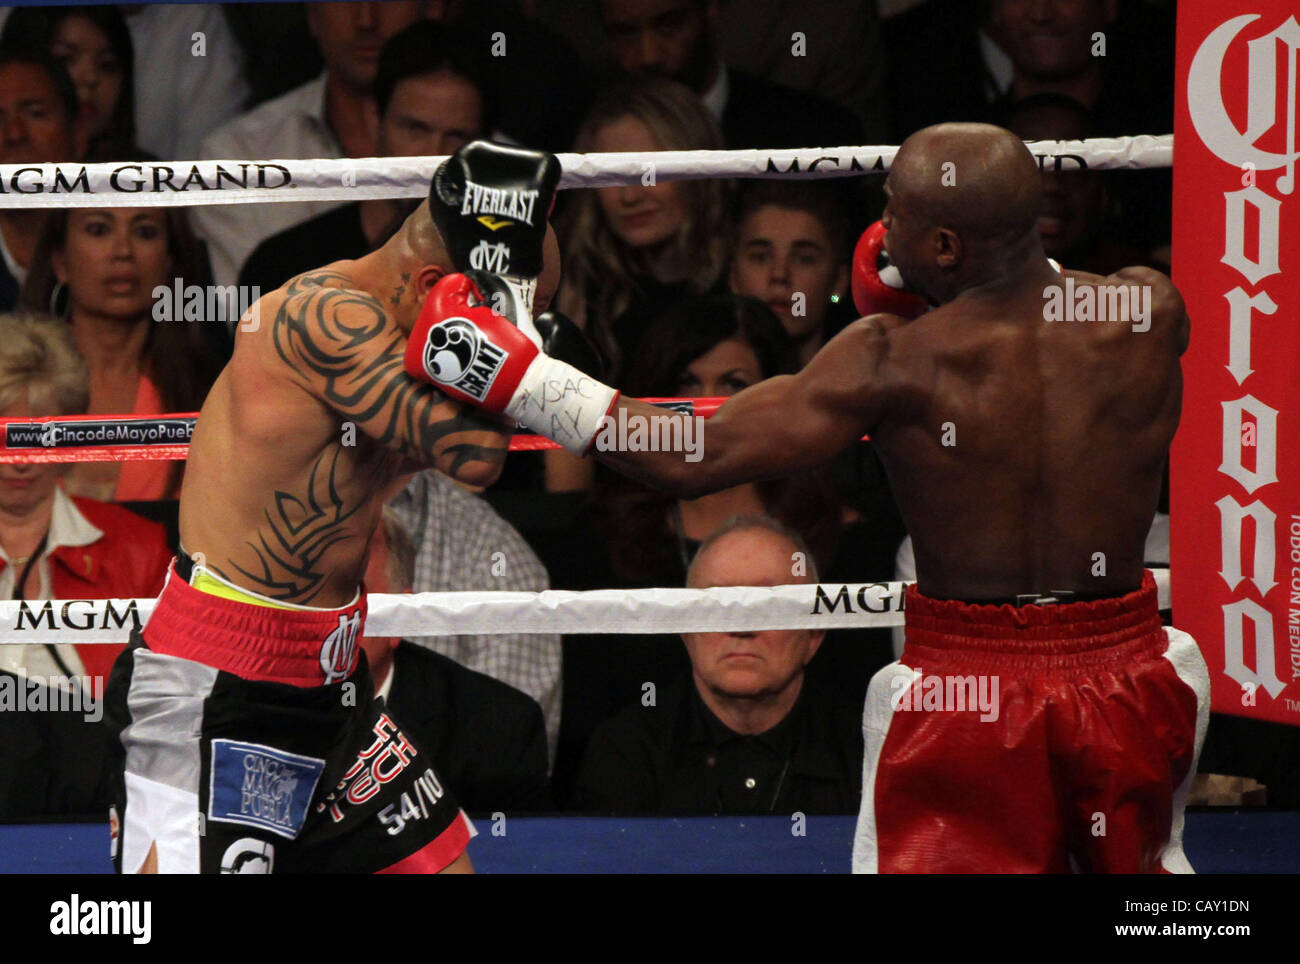 Over 16000 fans were in attendance at the MGM Grand Garden Arena in